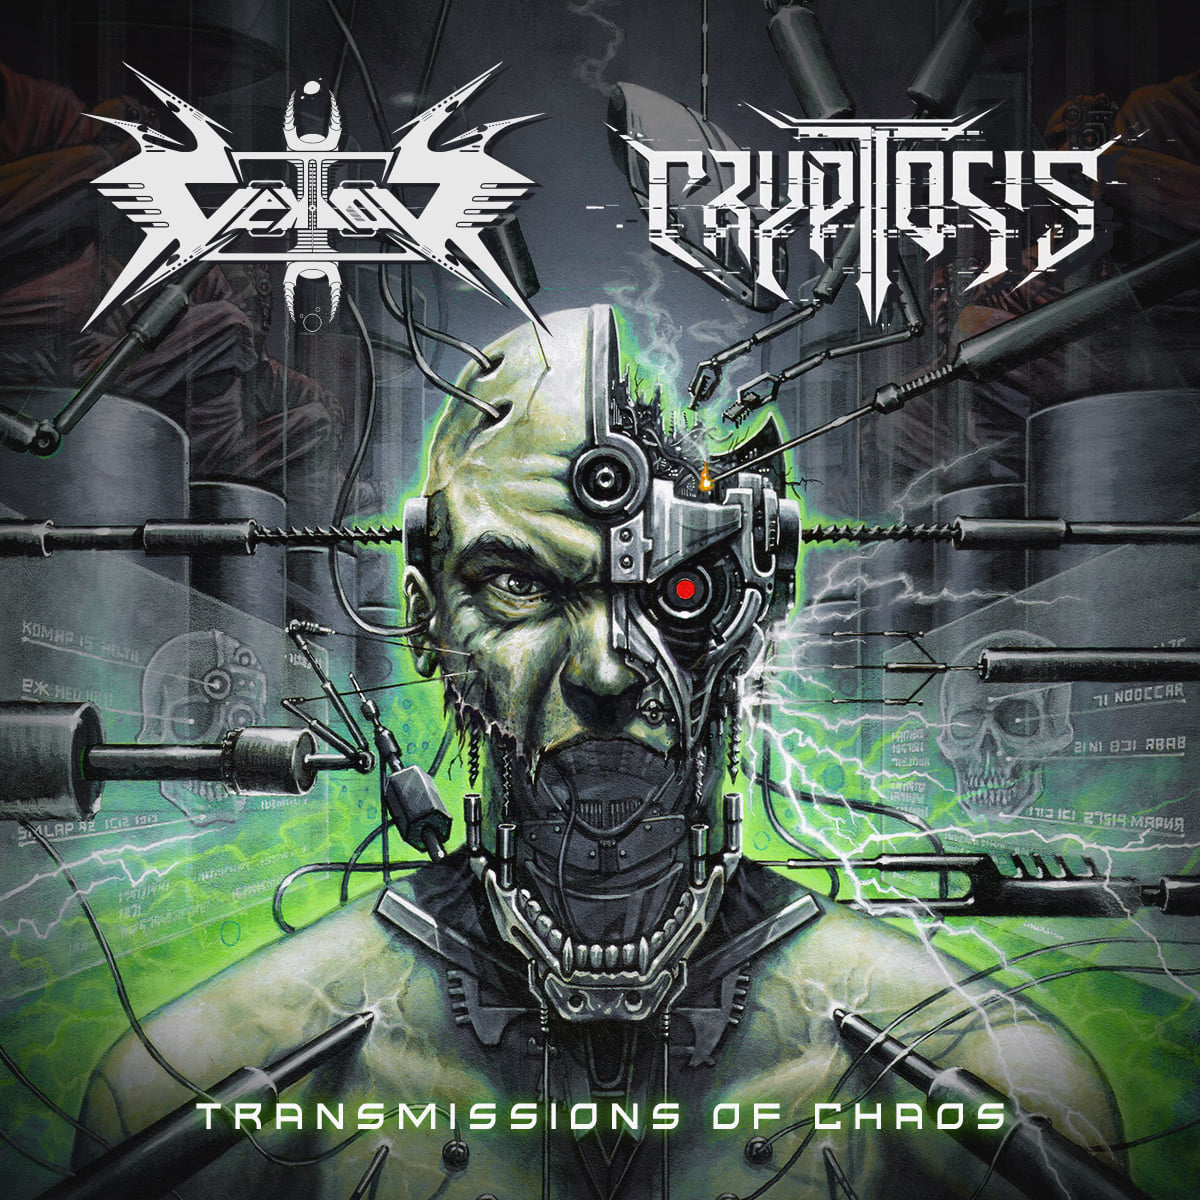 vektor cryptosis transmissions of chaos album ep cover artwork